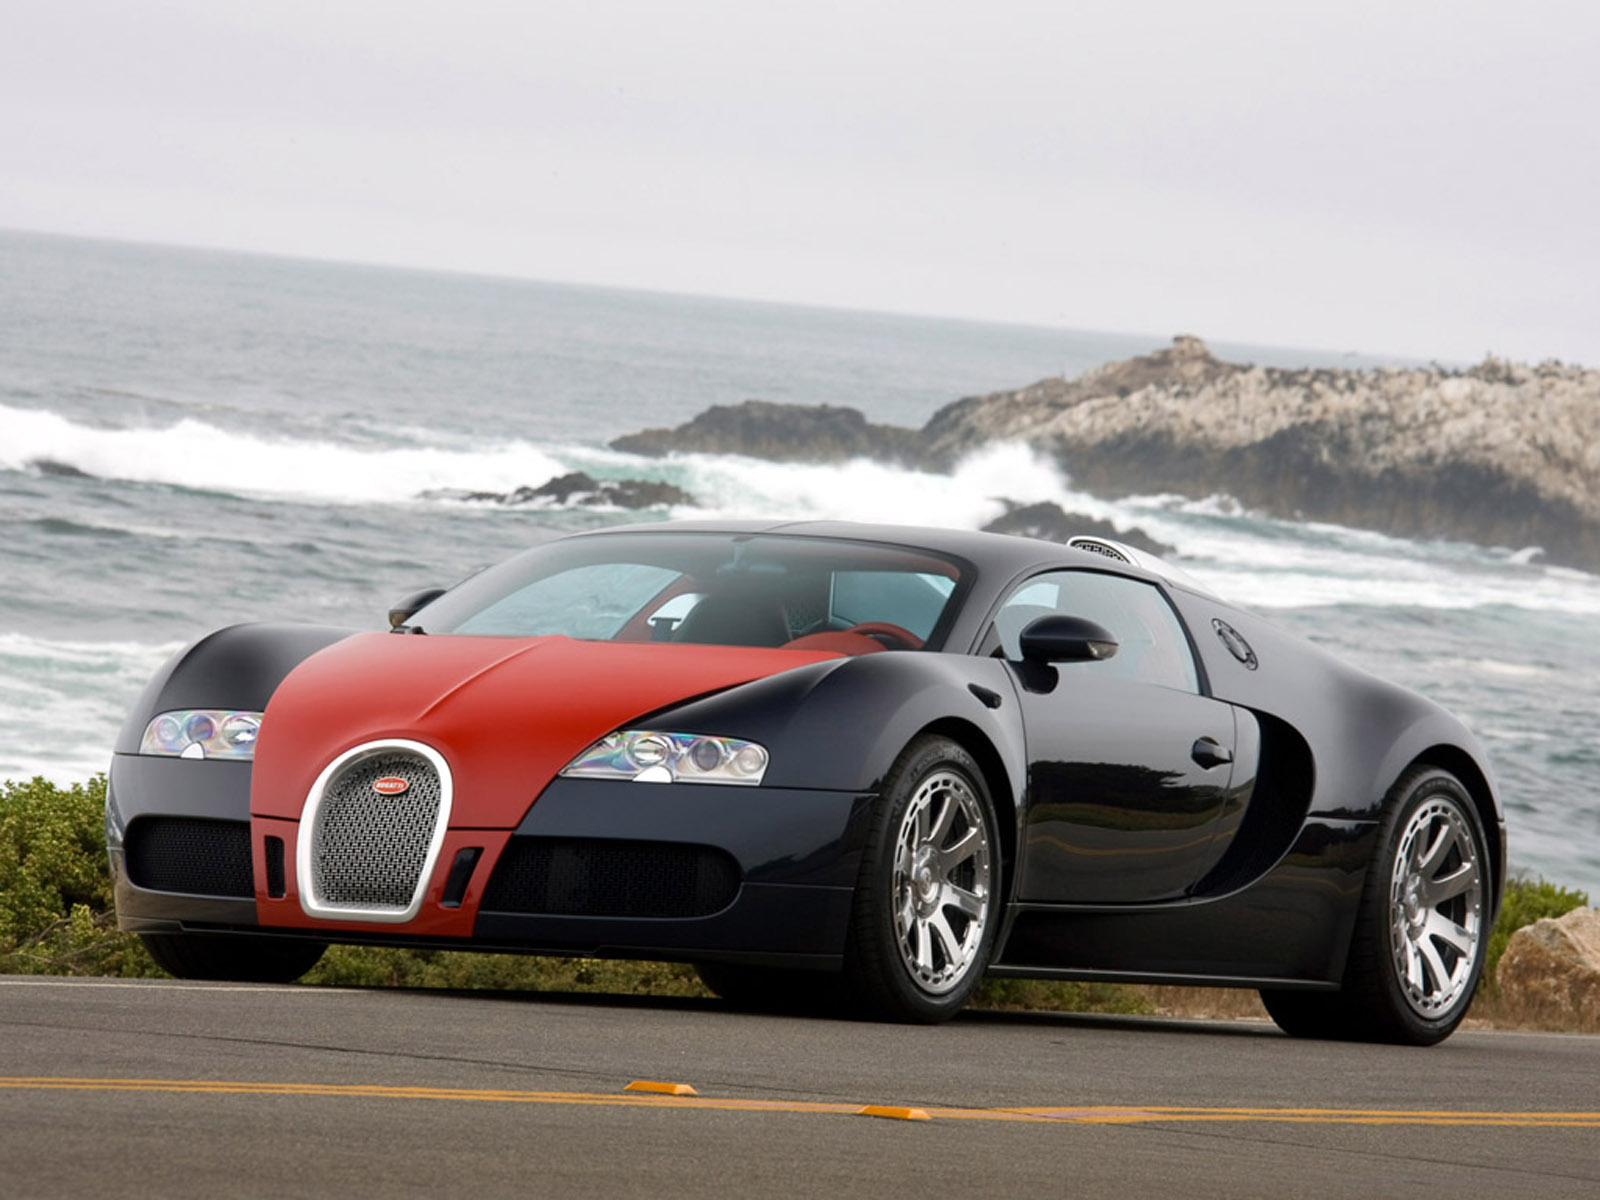 New Bugatti Veyron - World's Fastest Road Car